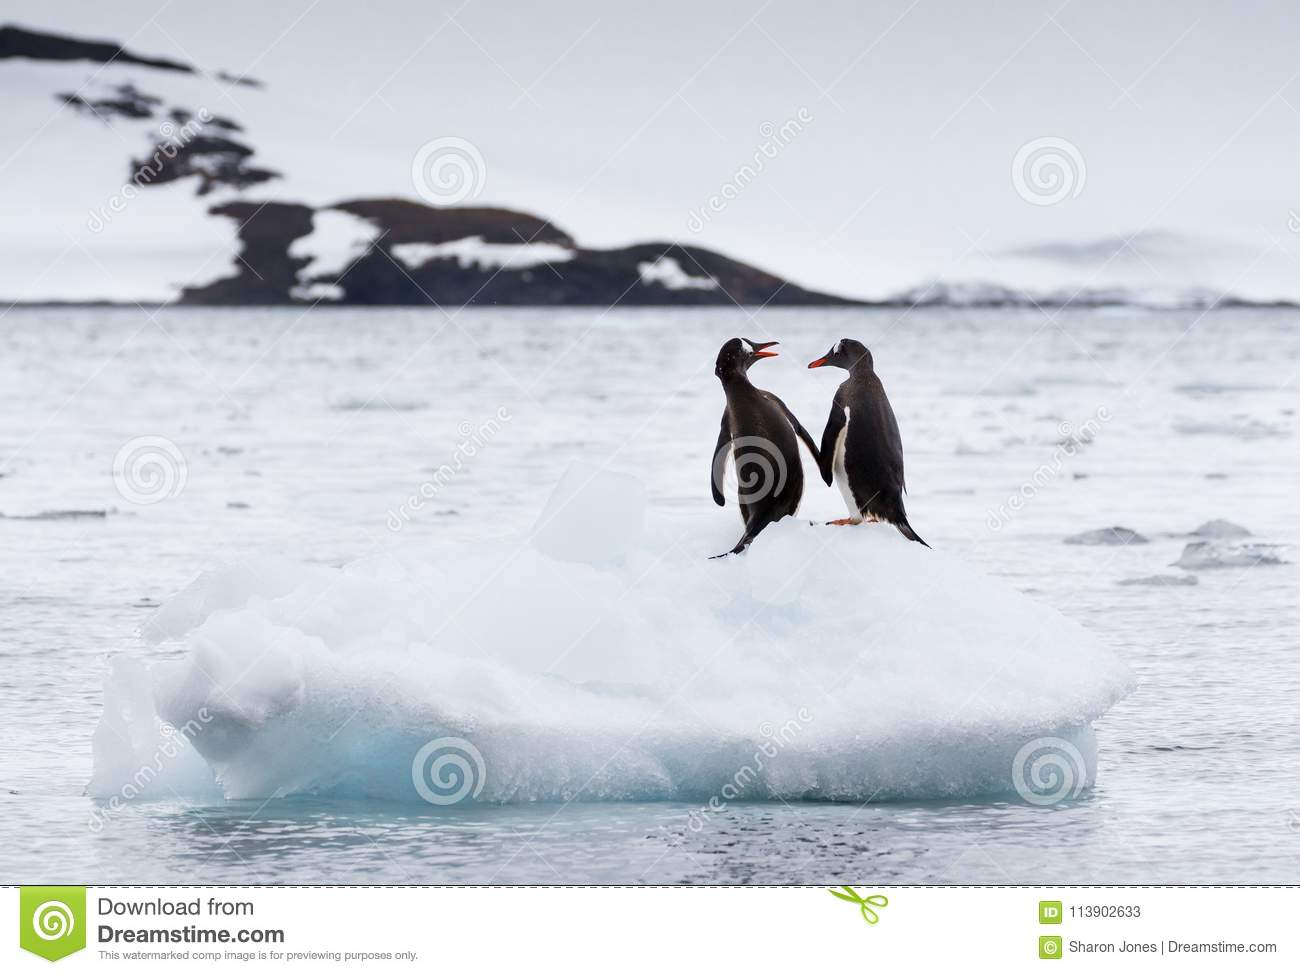 A pair of gentoo penguins Pygoscelis papua sitting on an iceberg with snow covered mountain in background, Antarctica